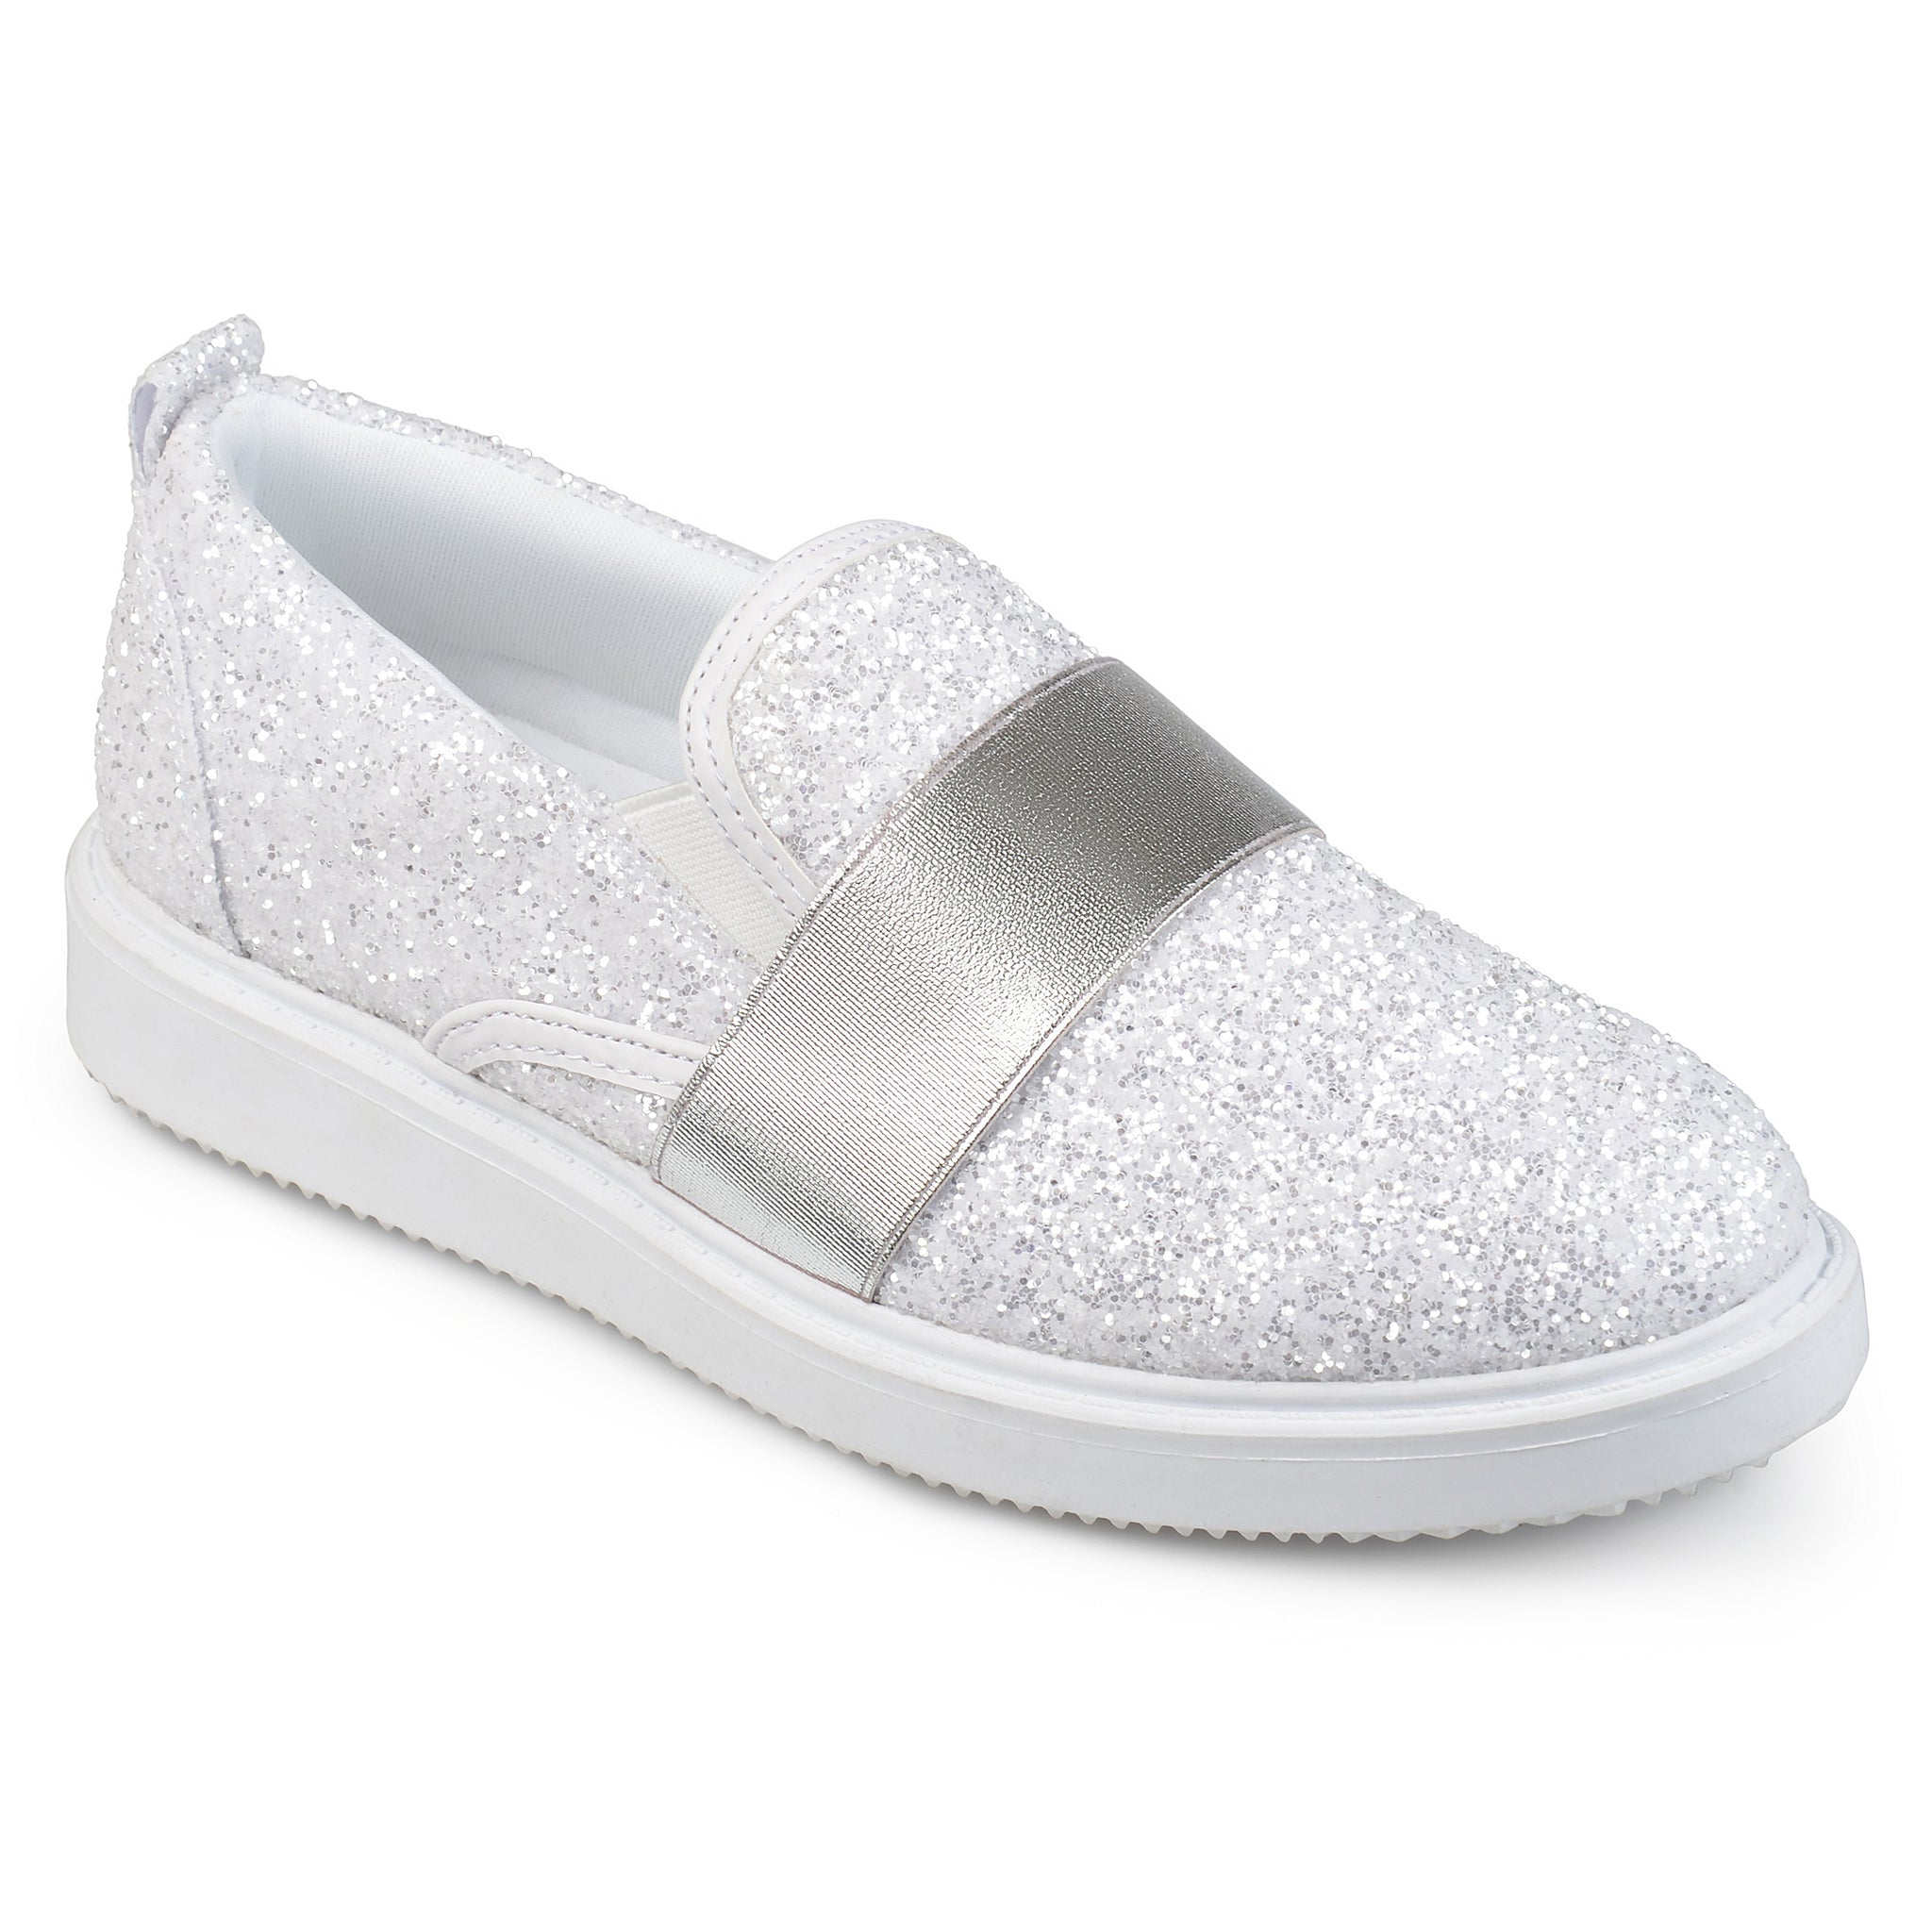 Glitter Slip-on Sneakers